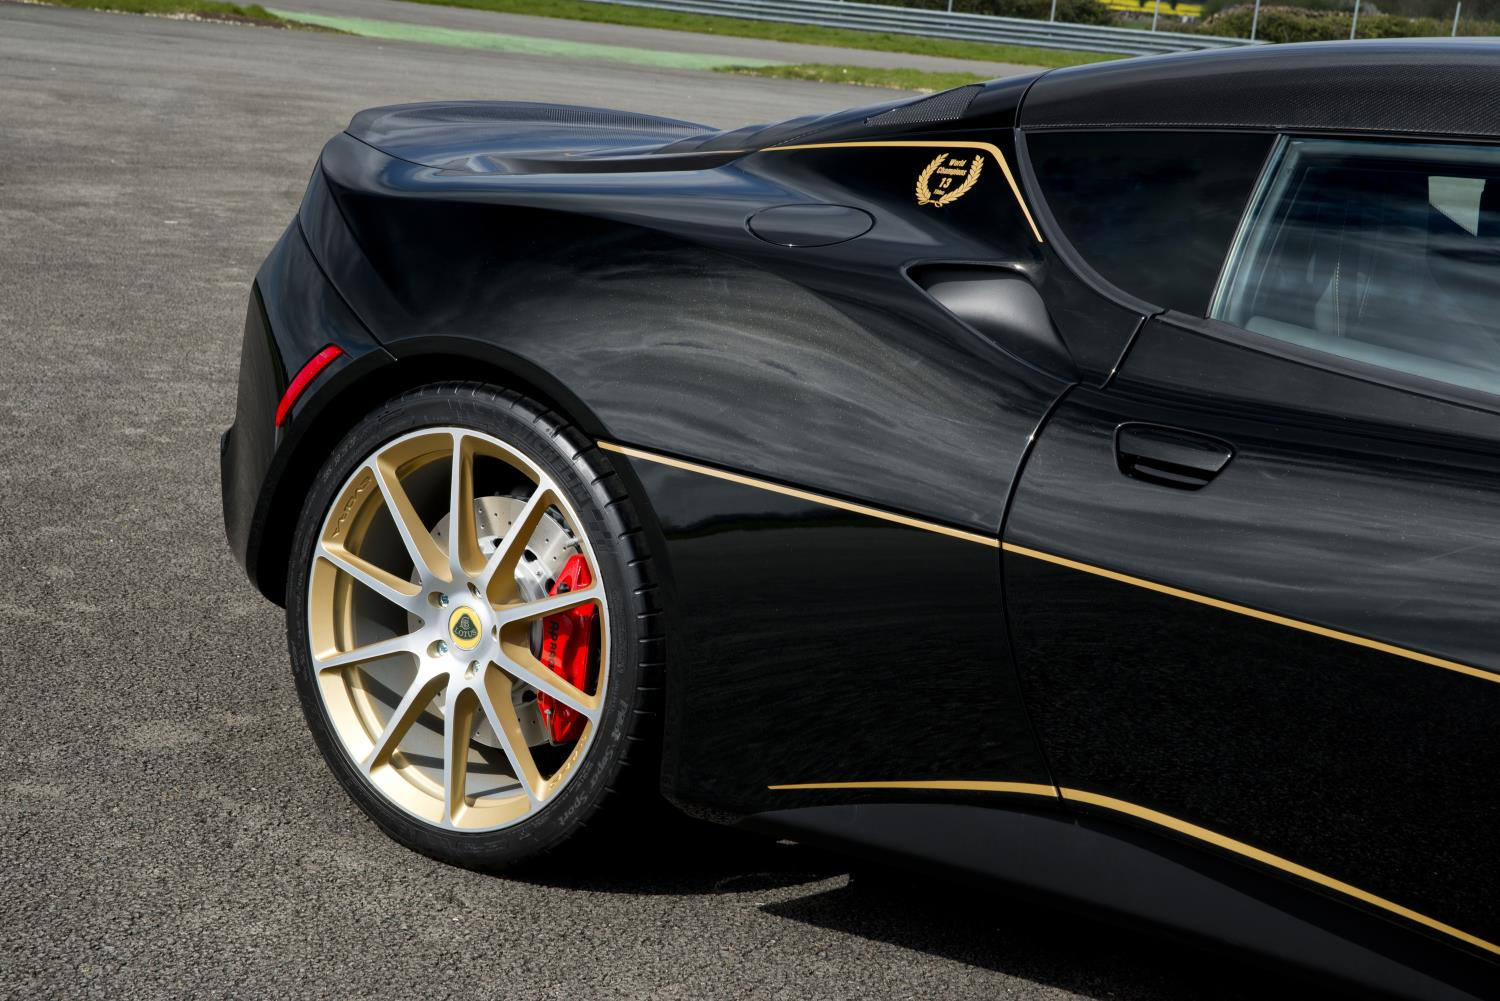 john player special f1 livery looks awesome on lotus evora. Black Bedroom Furniture Sets. Home Design Ideas